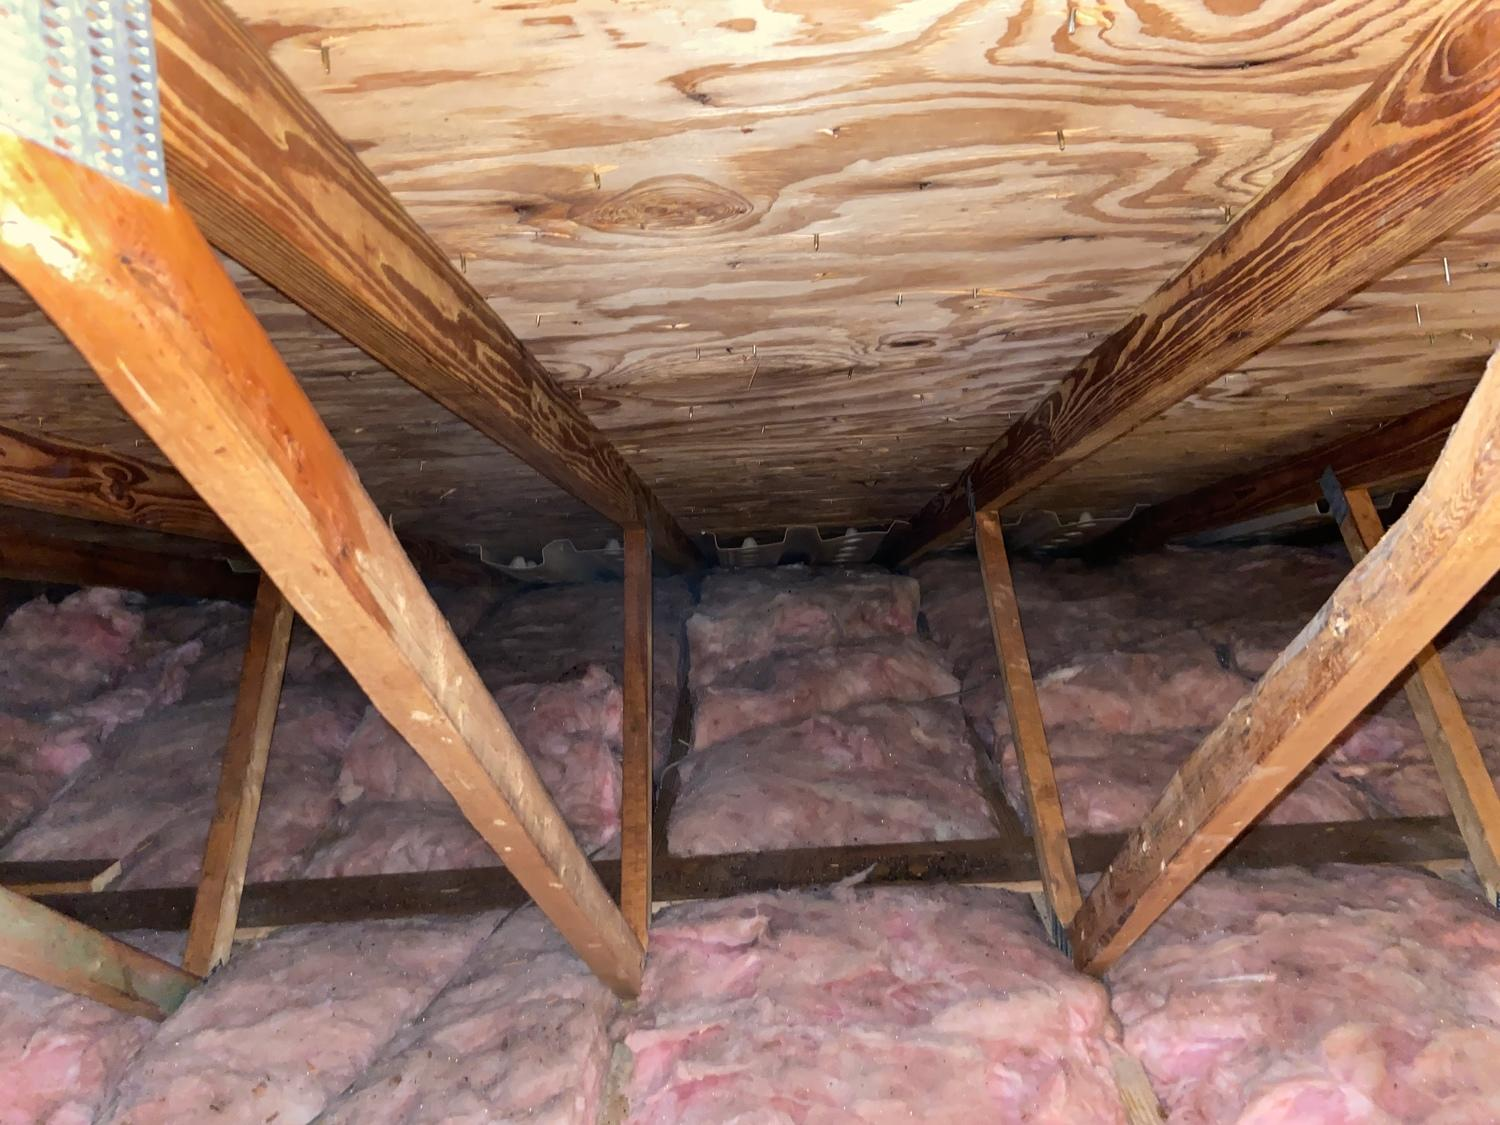 Remediation of mold and new baffles